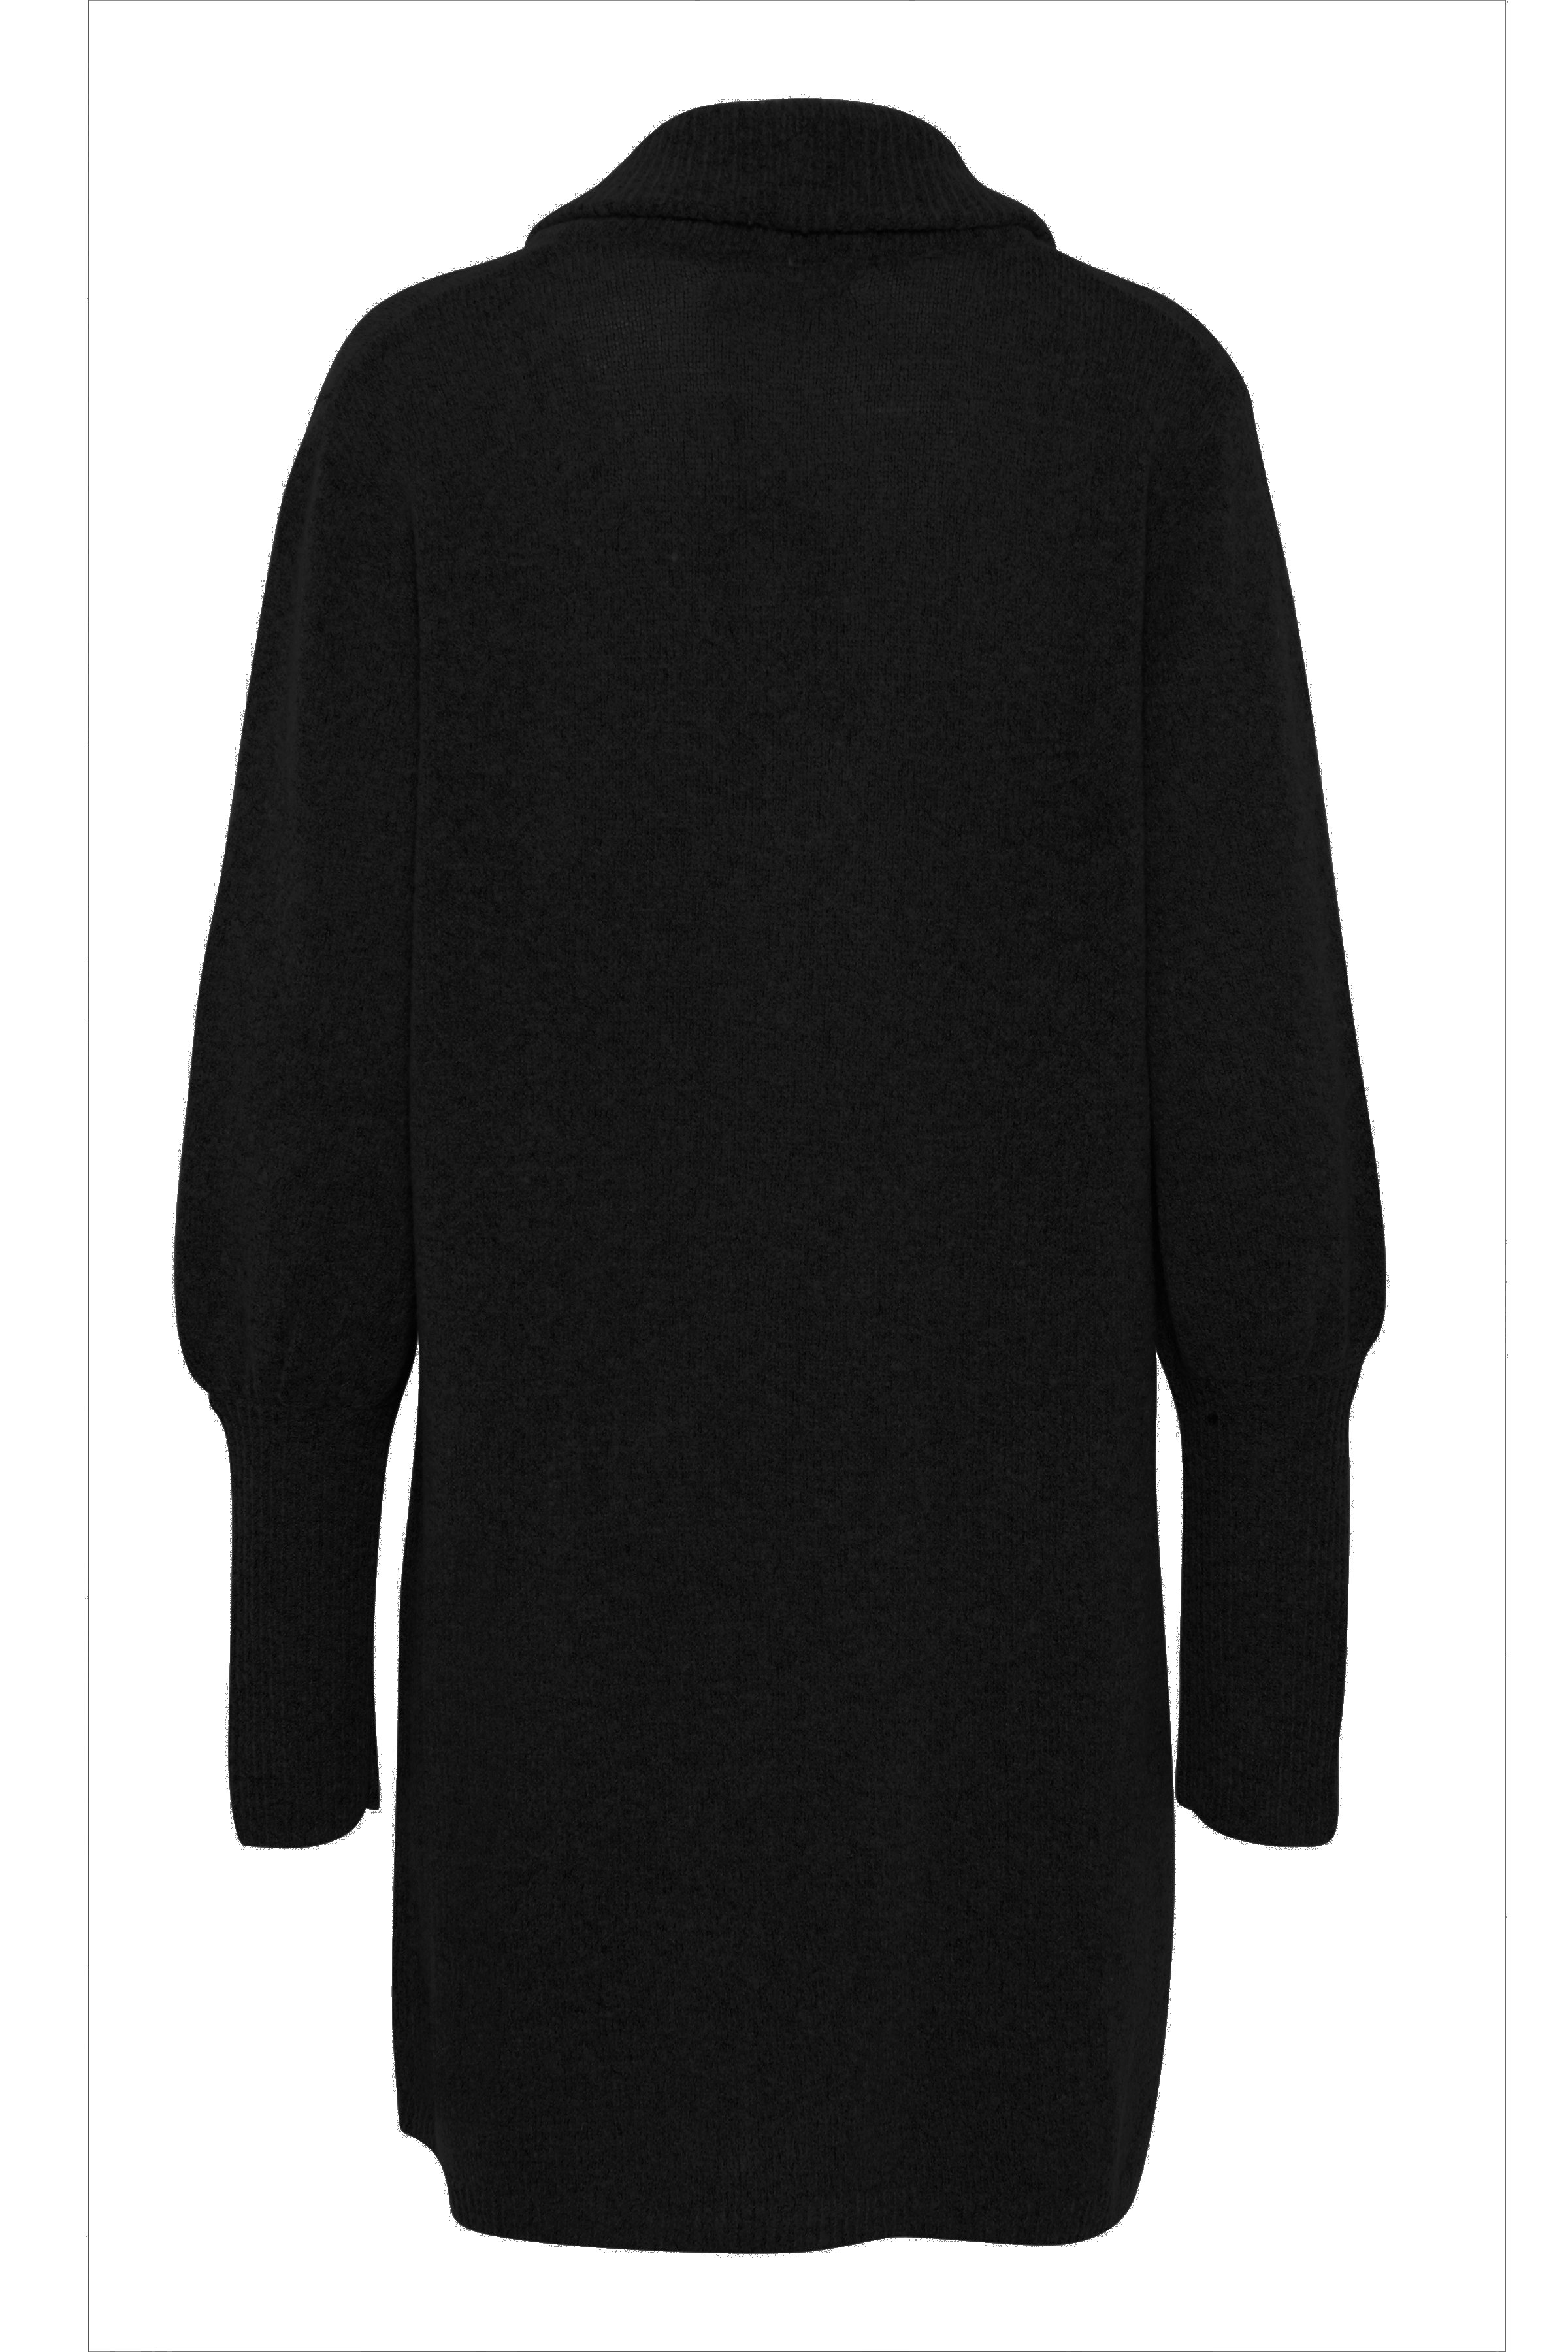 Black Knitted cardigan from b.young – Buy Black Knitted cardigan from size XS-XXL here